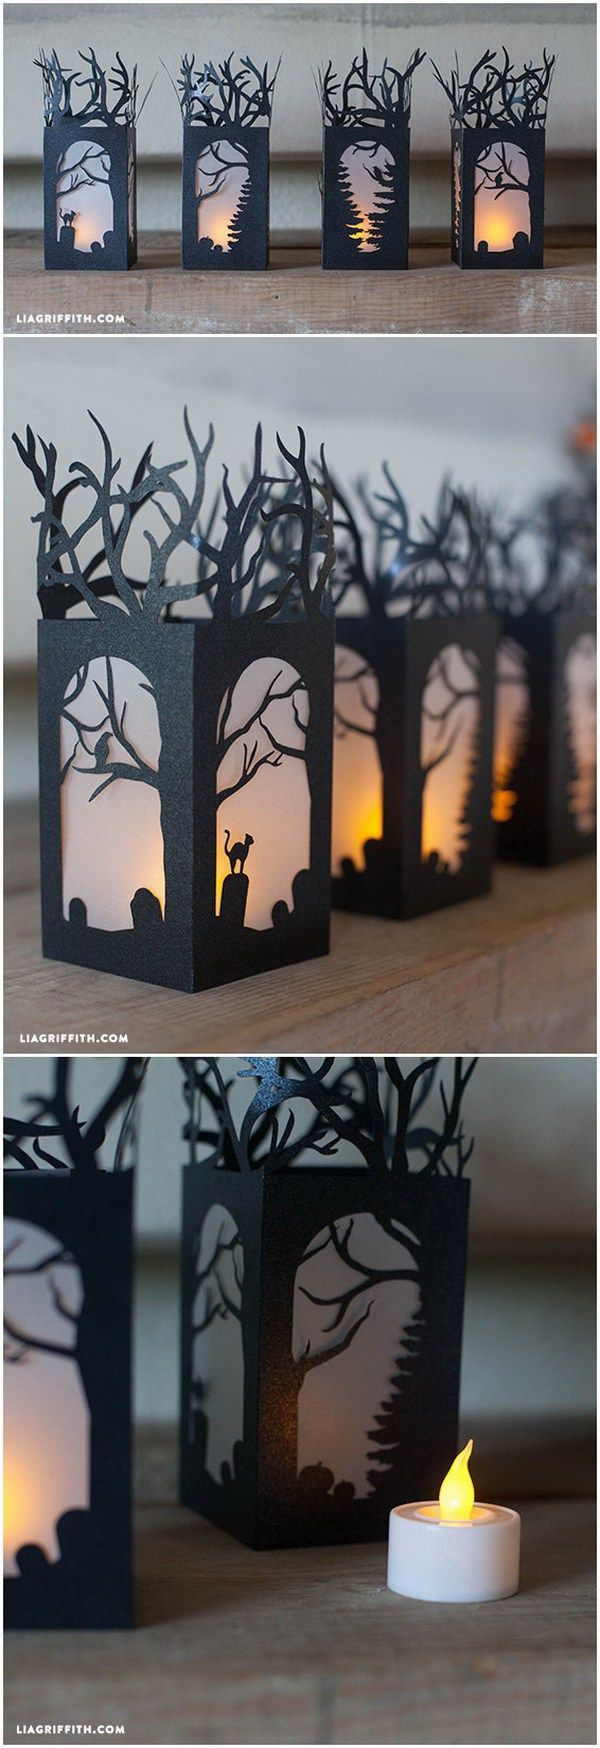 11 best DIY Halloween Decor Ideas images on Pinterest Halloween - halloween decorations diy